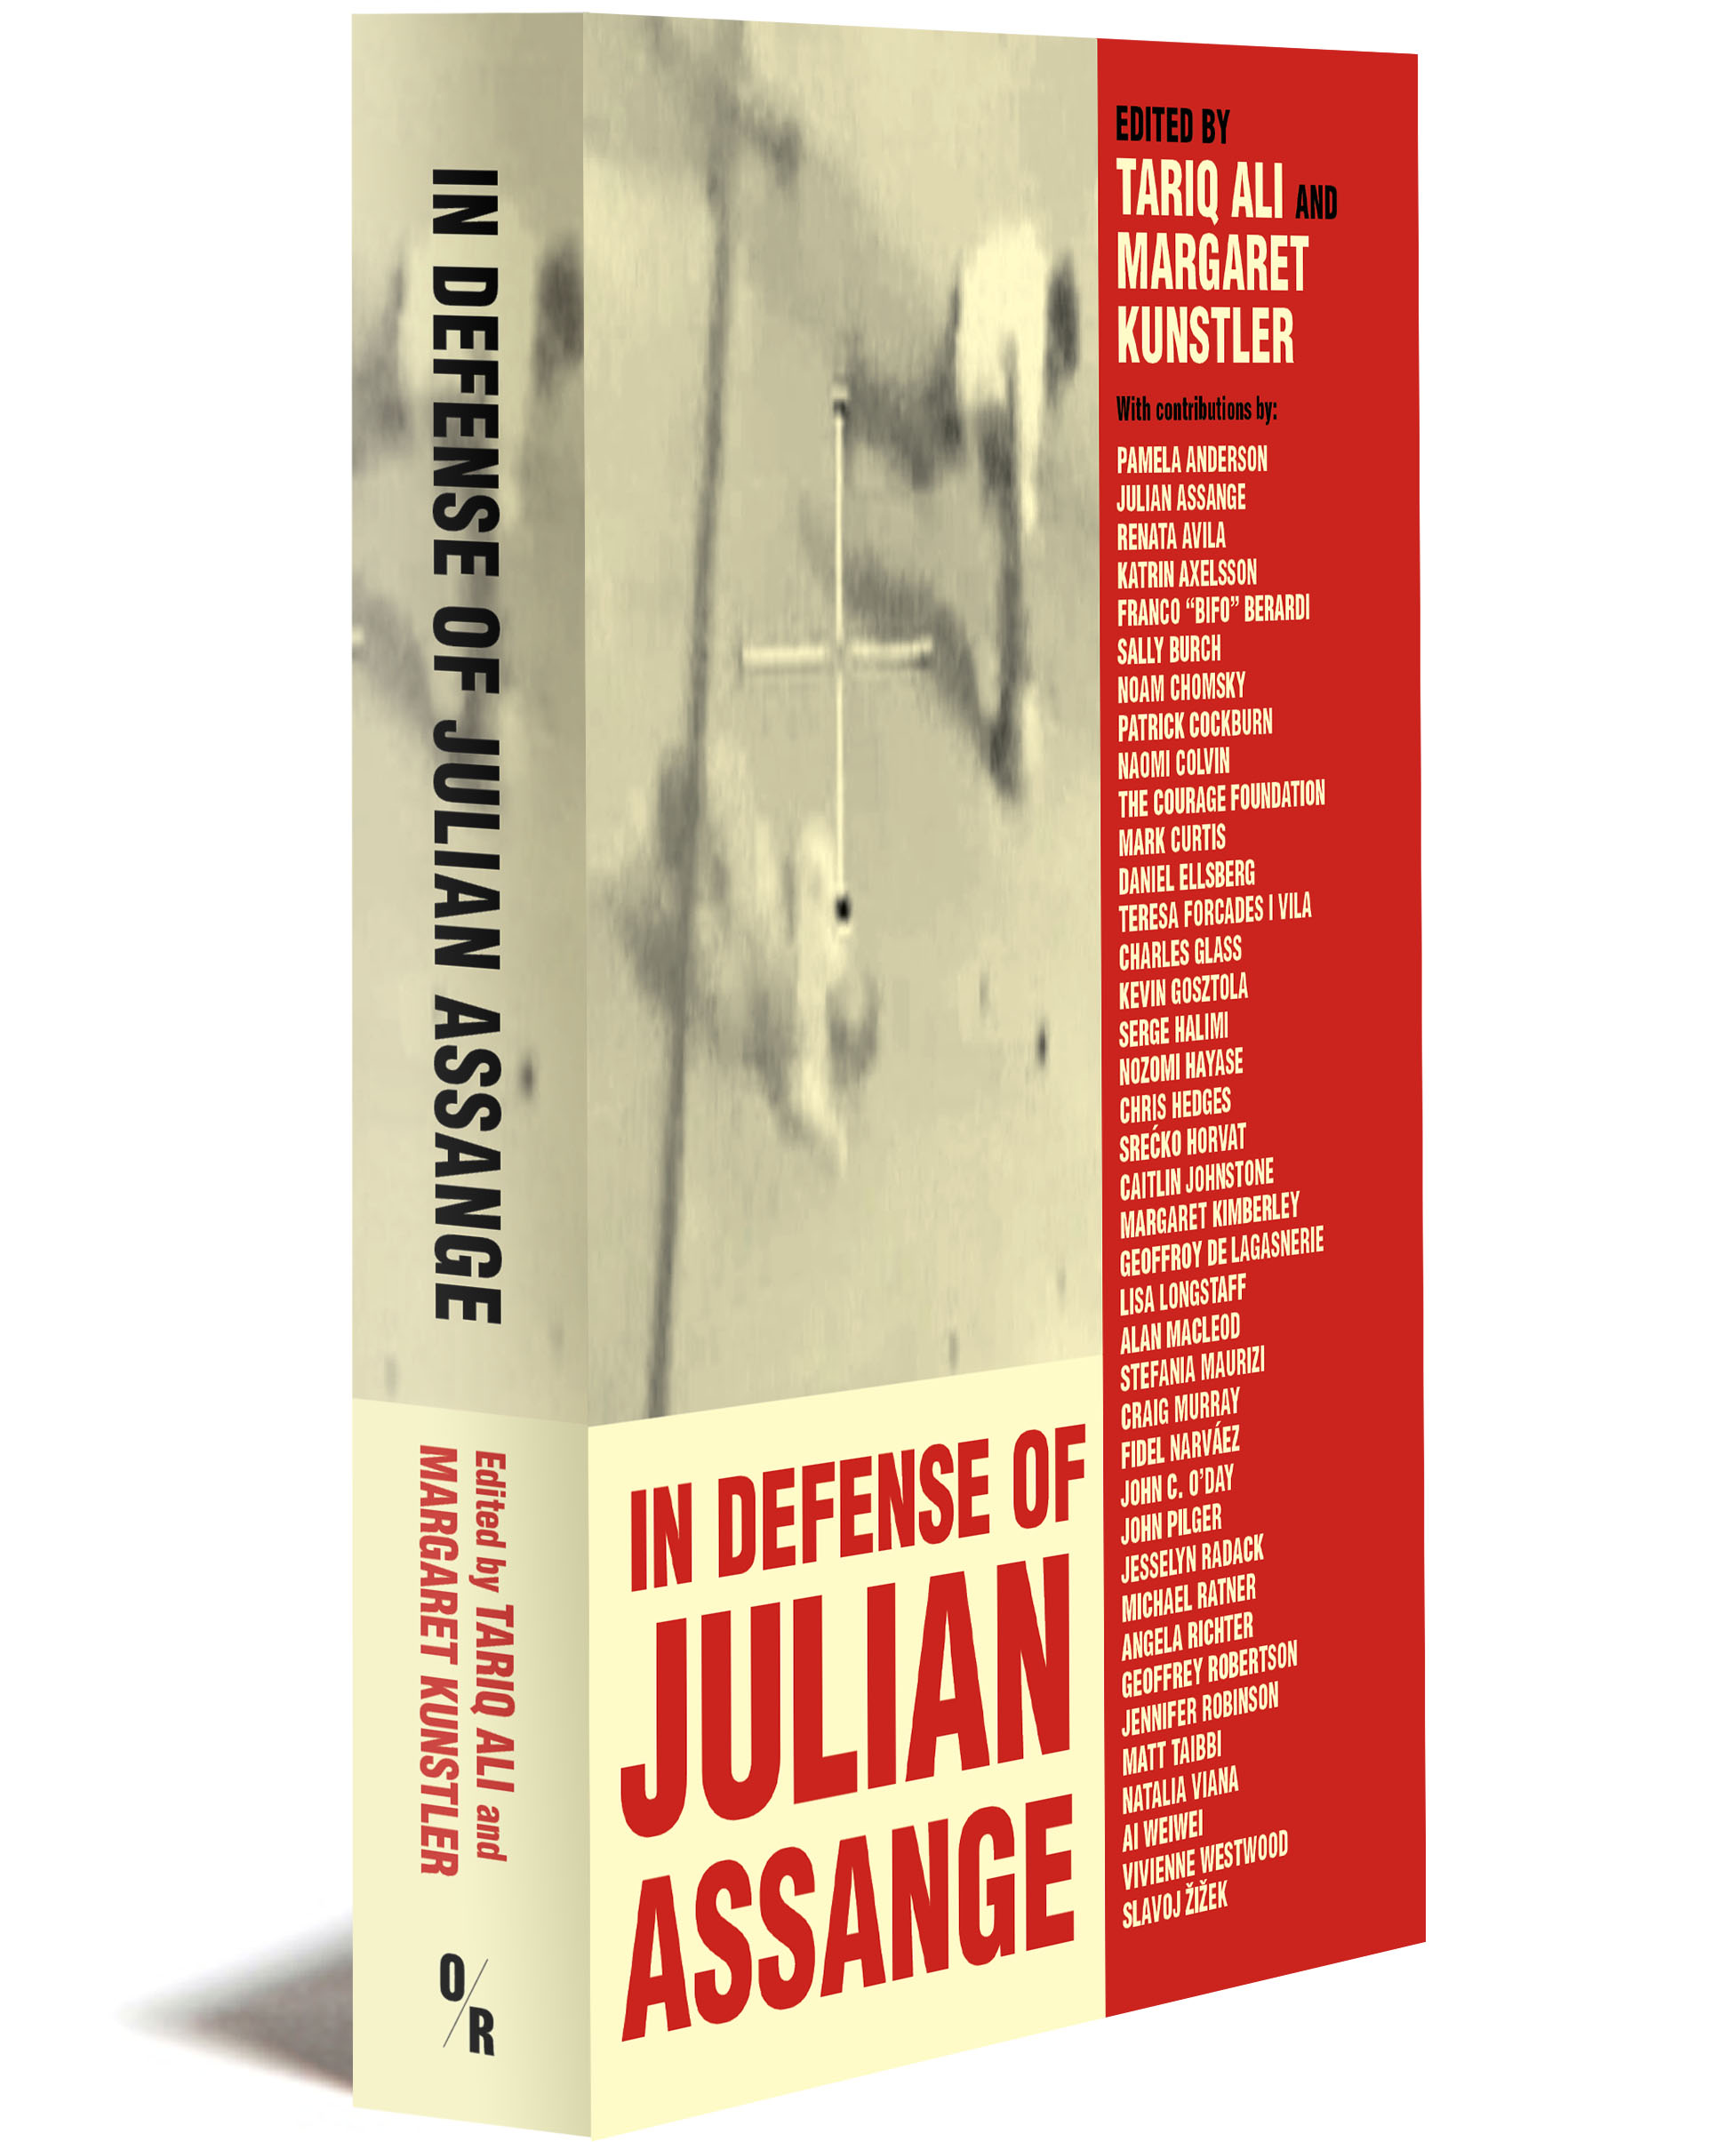 in defense of julian assange cover